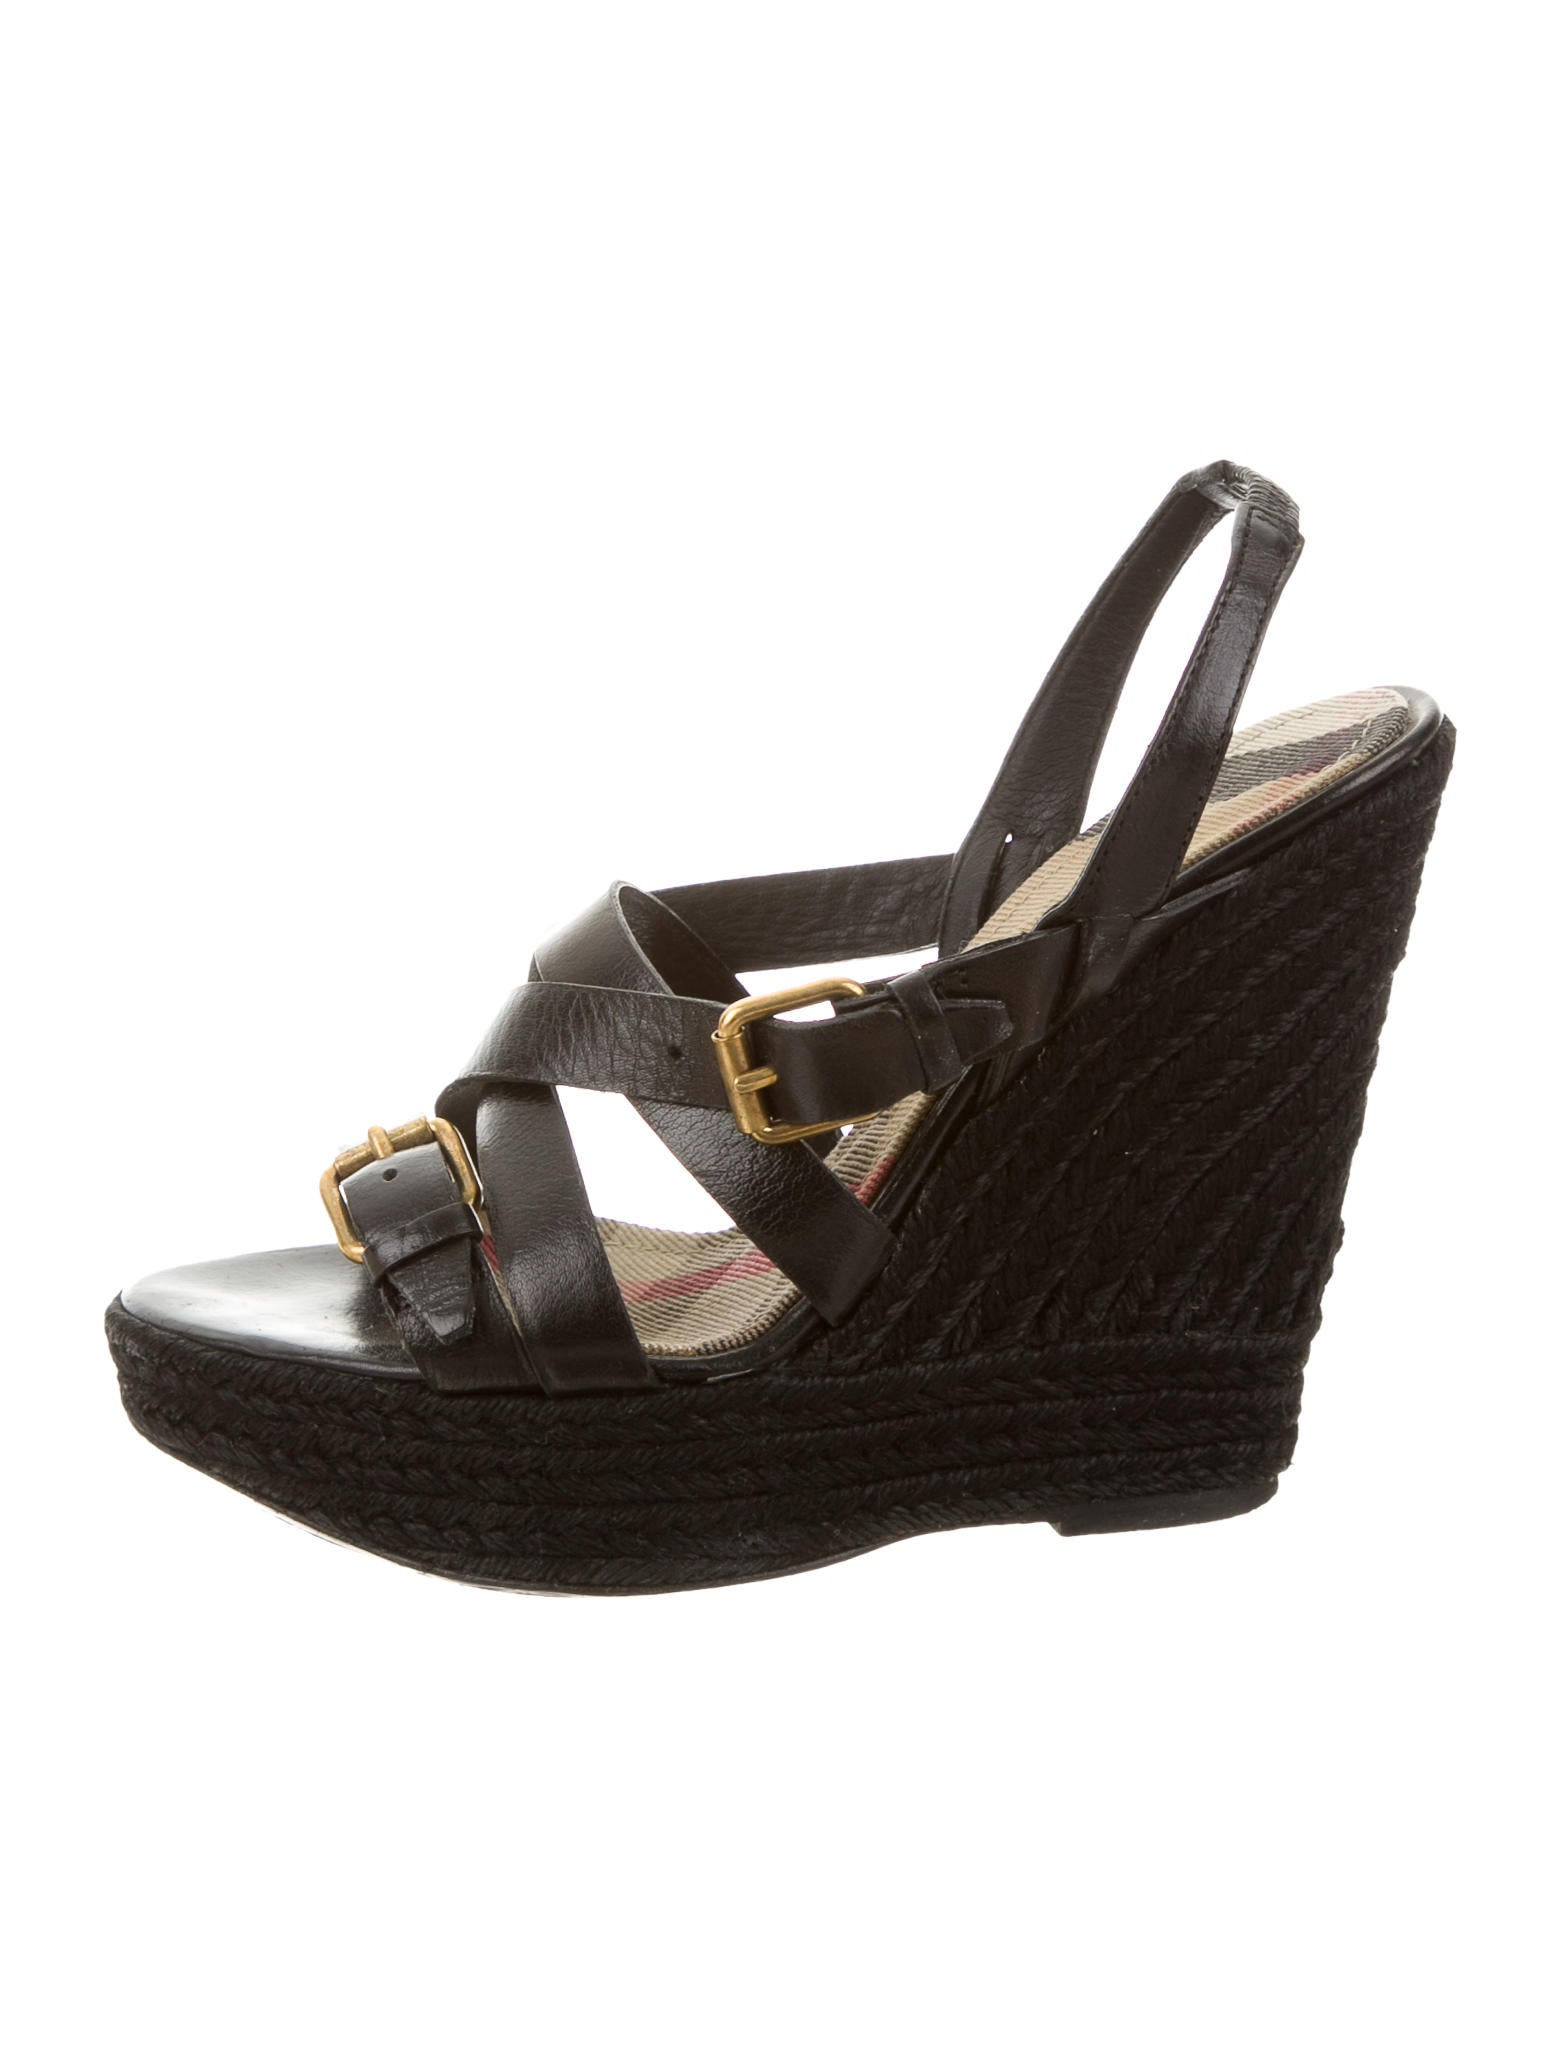 burberry leather wedge sandals shoes bur59860 the